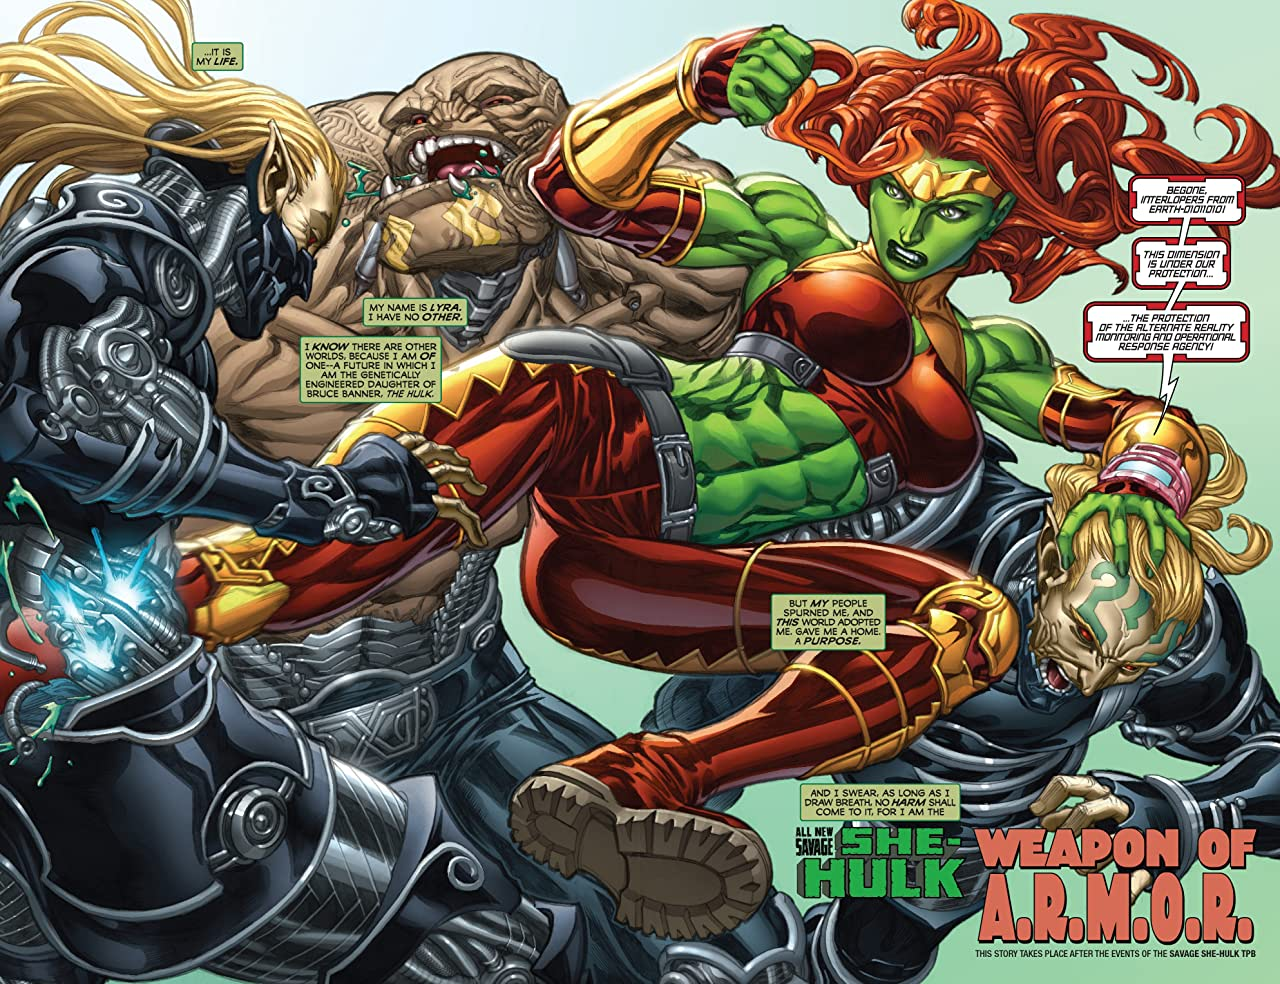 Hulk: Fall Of The Hulks - The Savage She-Hulks